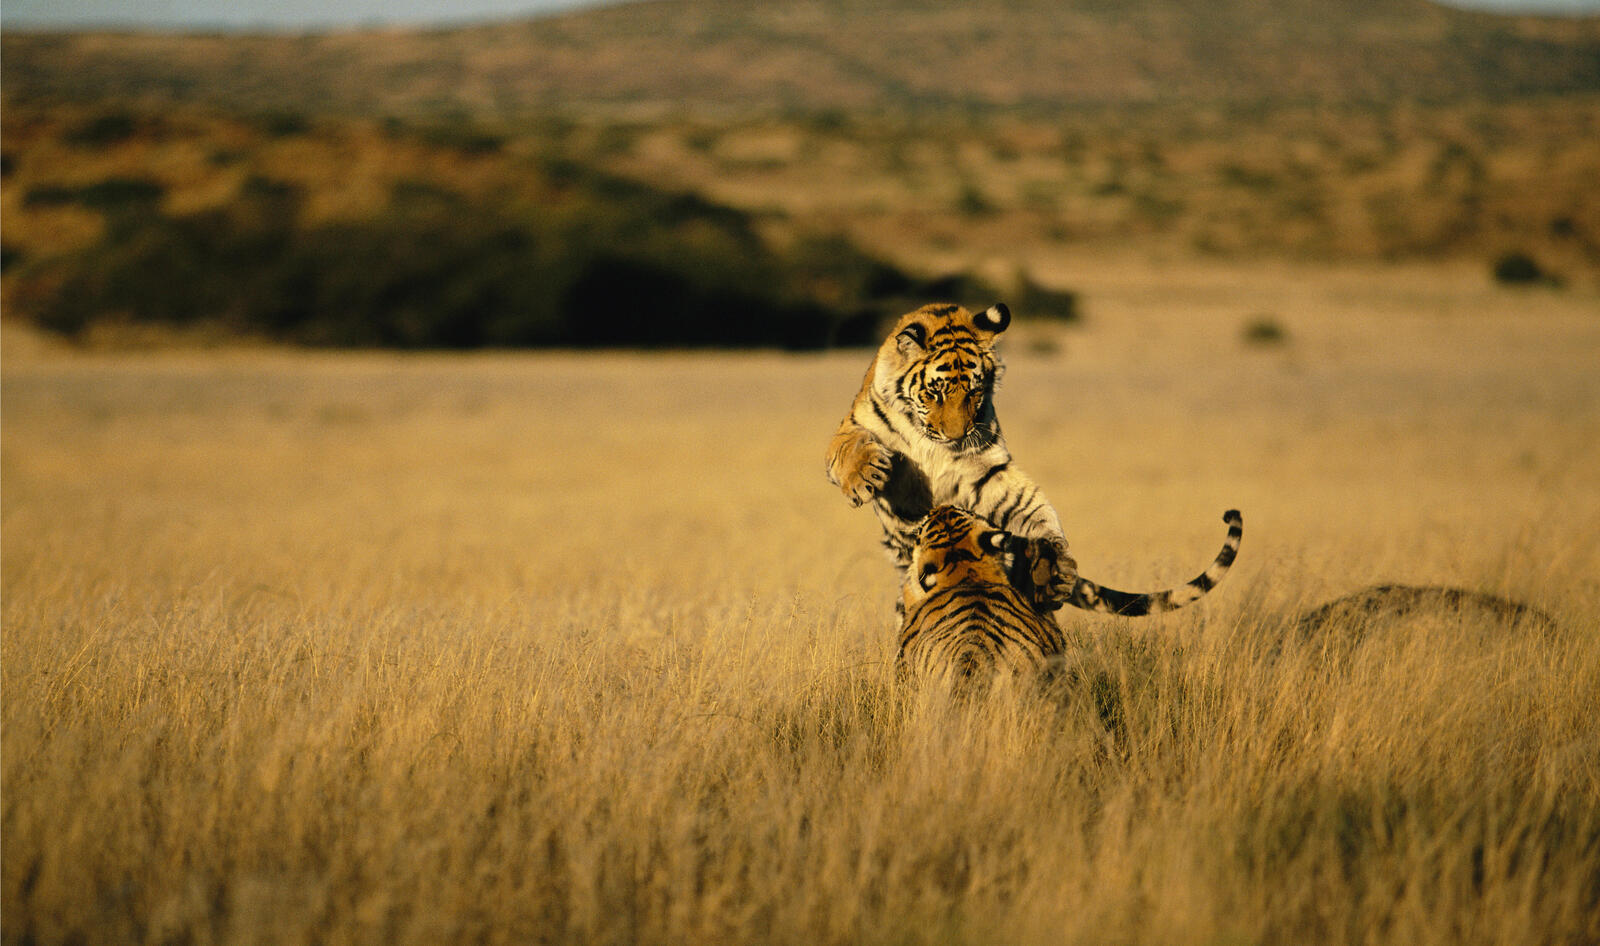 Two tigers leaping in the grasses